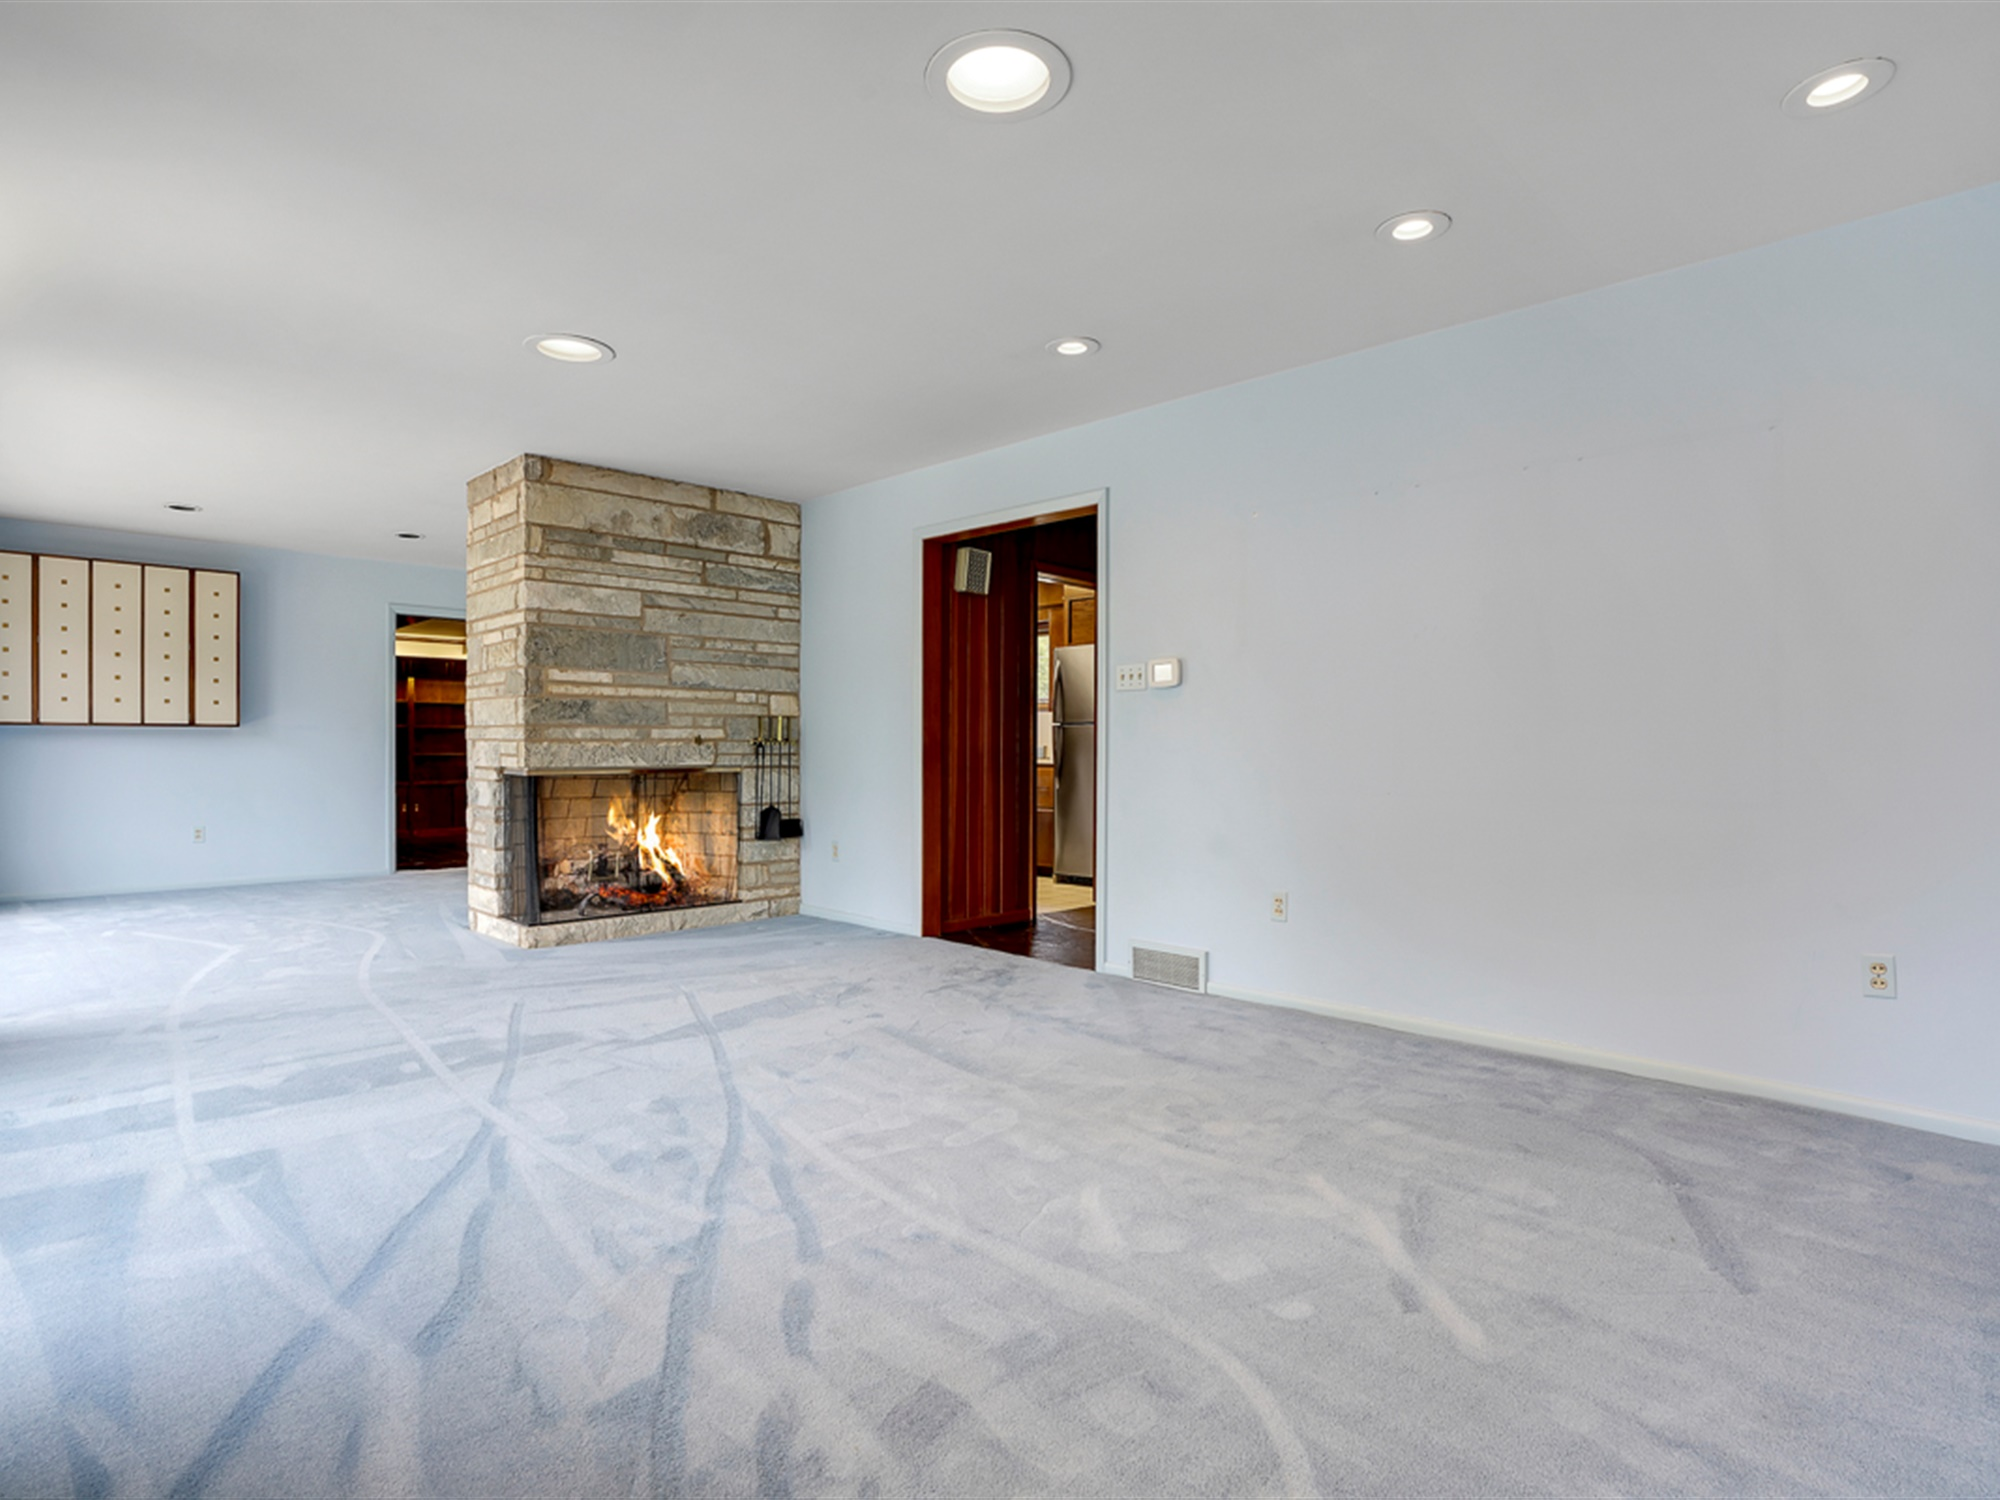 964 Reber St - Living Room with fire place